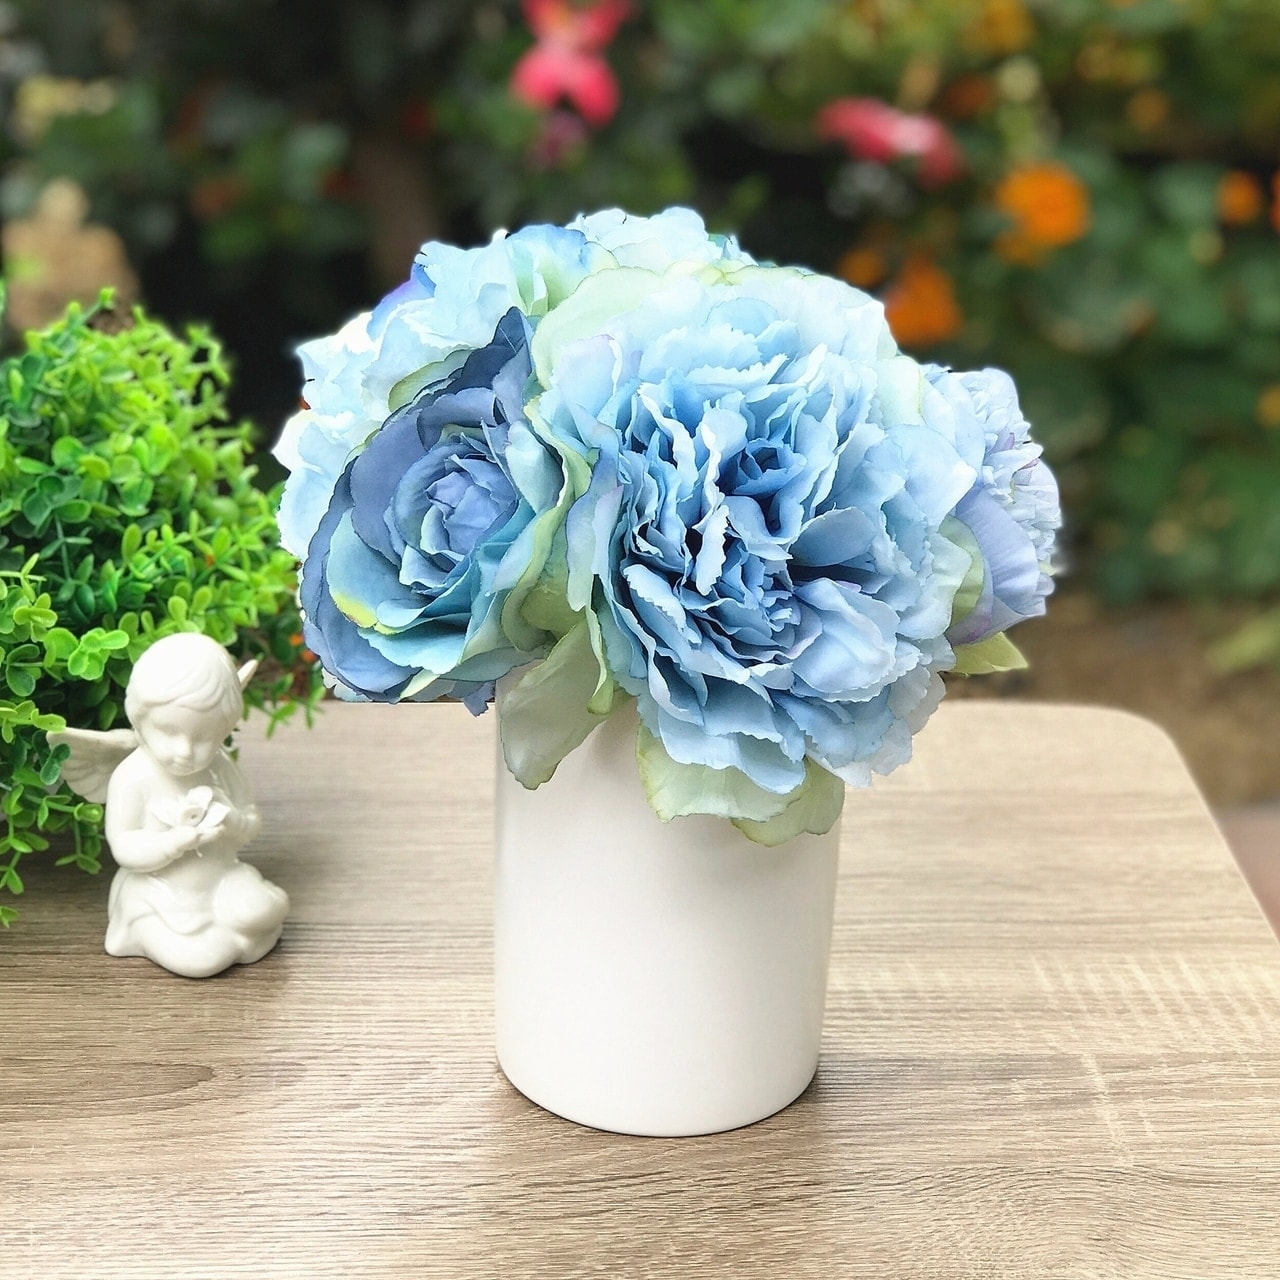 Enova Home Blue Silk Peony And Rose Mixed Flower Arrangement In White Ceramic Vase Overstock 28226160